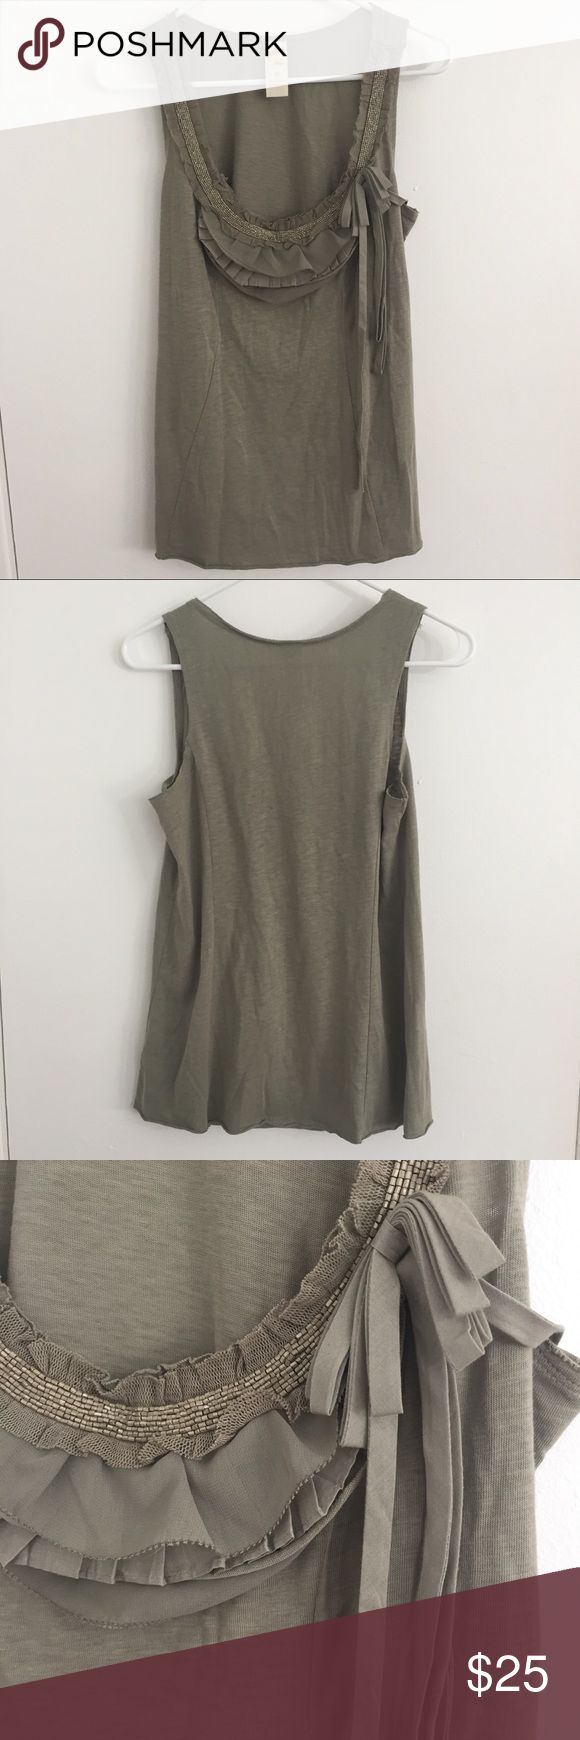 Anthropologie Pretty Embellished Cotton Tank Top This pretty tank is sage green and embellished with beads and ruffles. It has a unique vertical seamed construction and is 100% cotton. Never worn.  RESERVED FOR A BUYER HAVING TROUBLE WITH PM BUNDLE FEATURE. Anthropologie Tops Tank Tops